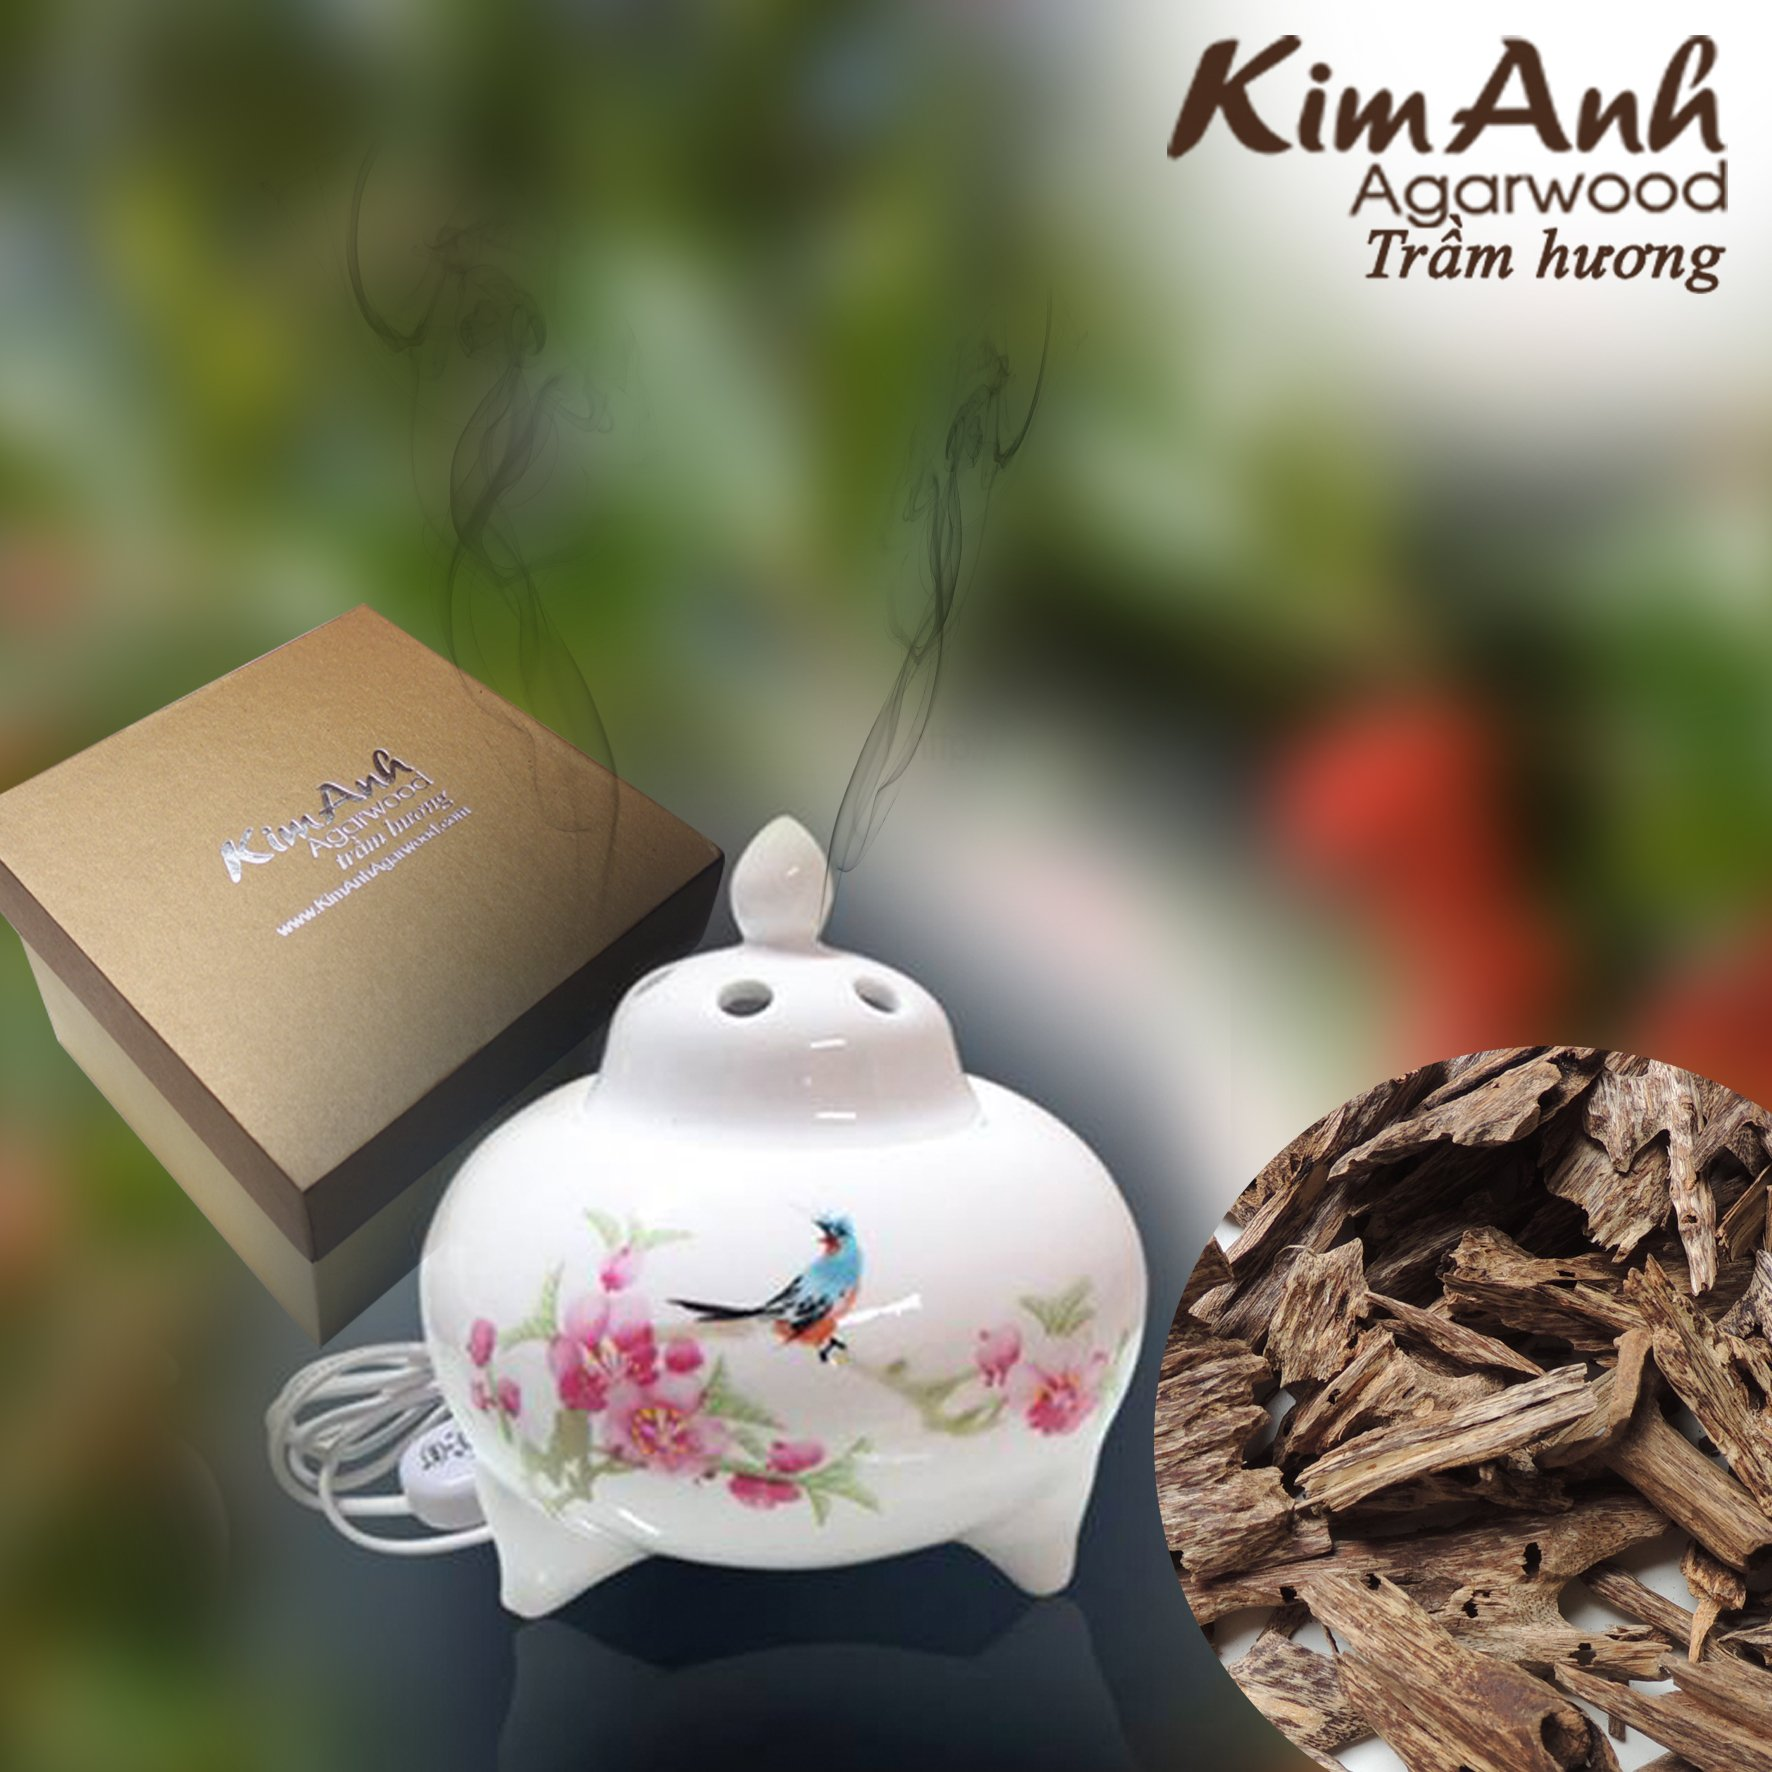 Kim Anh Agarwood chips - Vietnam natural agarwood chips - Pure high quality Agarwood Aloeswood chips - Oud wood chips - Oudh chips for - charcoal or electric incense burner- 30g by Kim Anh Agarwood (Image #2)